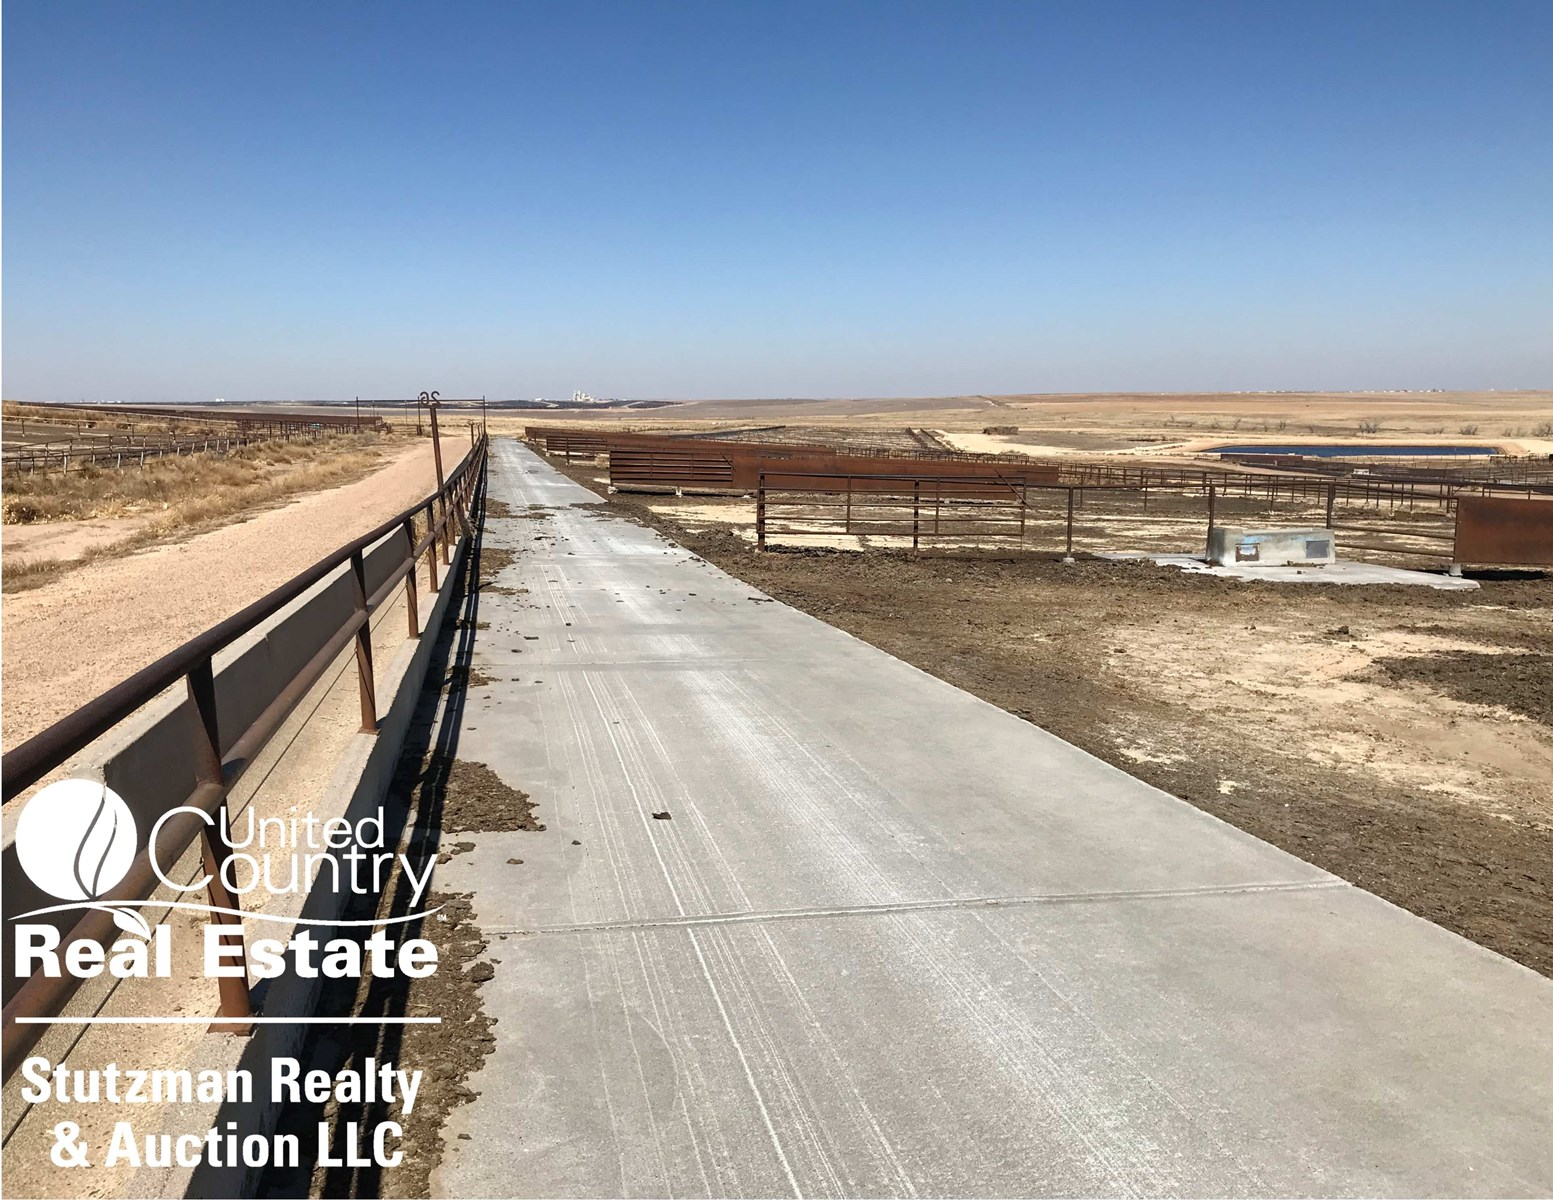 COMMERCIAL FEEDYARD FOR SALE IN WESTERN KANSAS